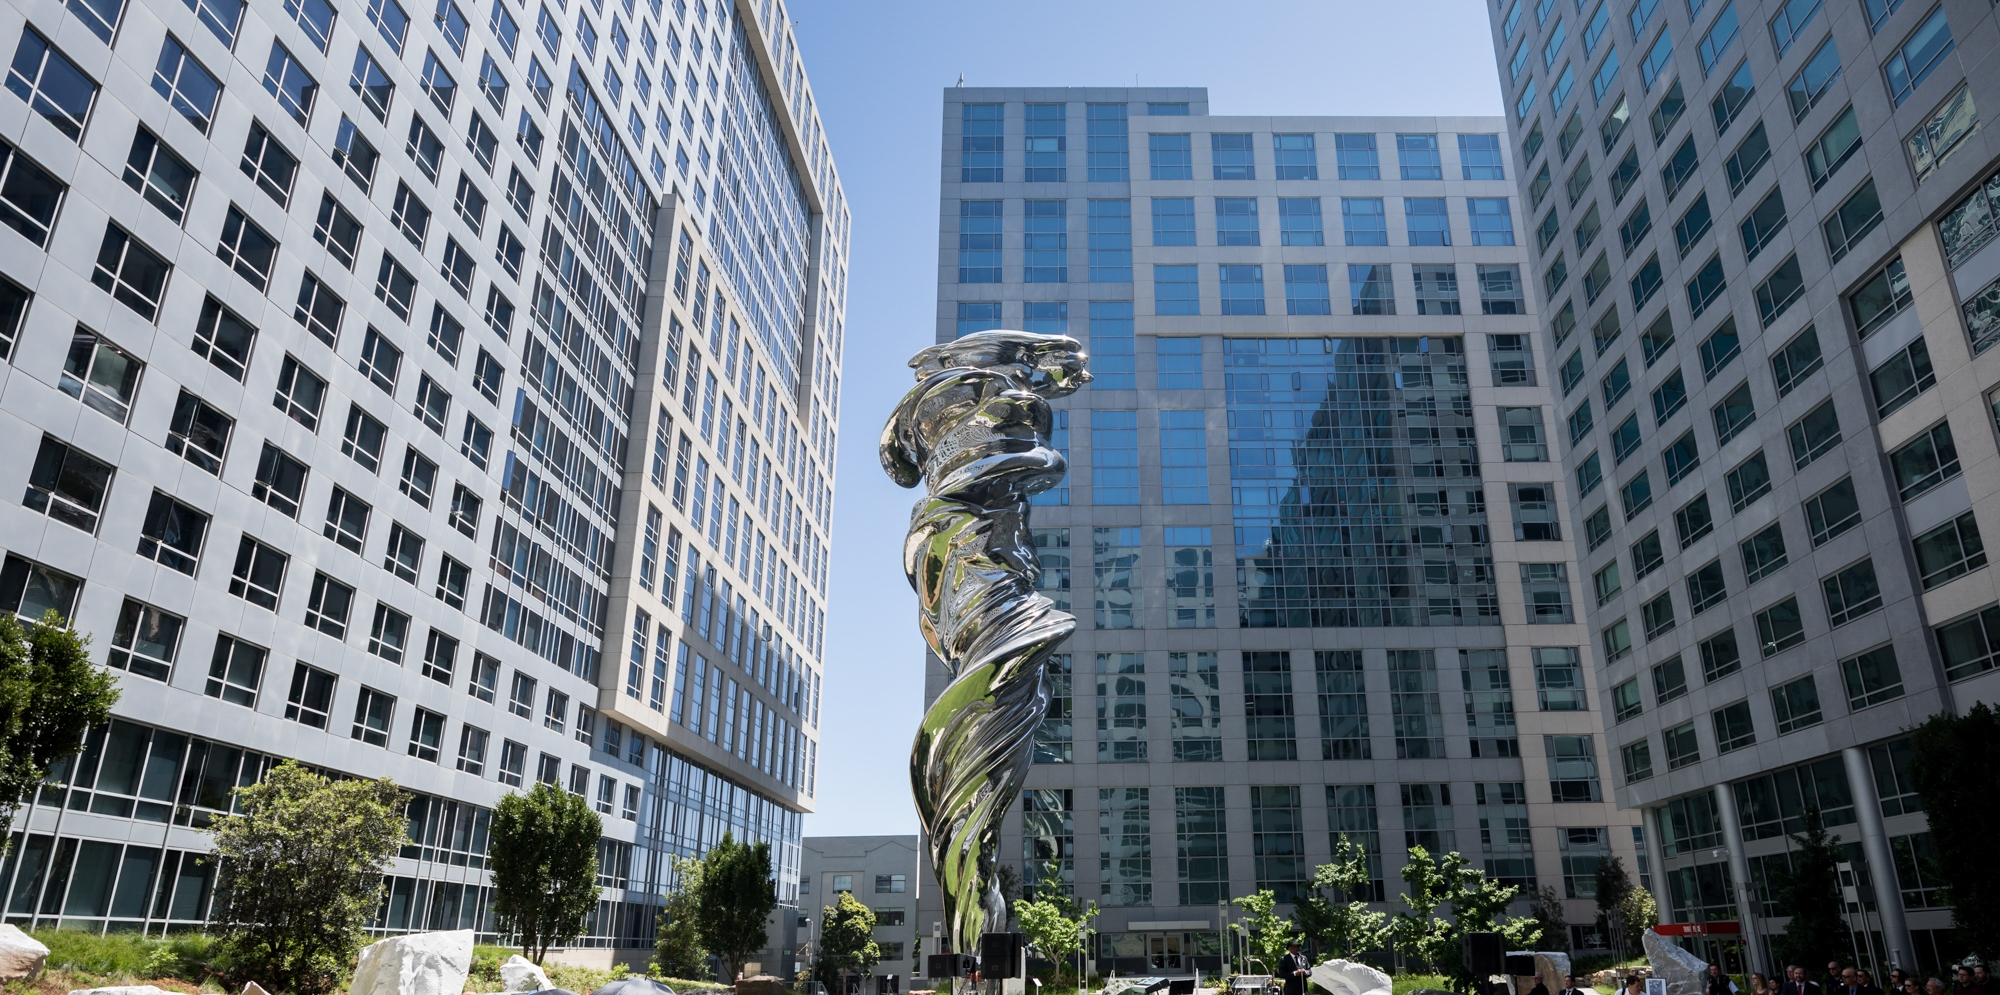 A nine-story silvery statue of a woman surrounded by mid-rise buildings.